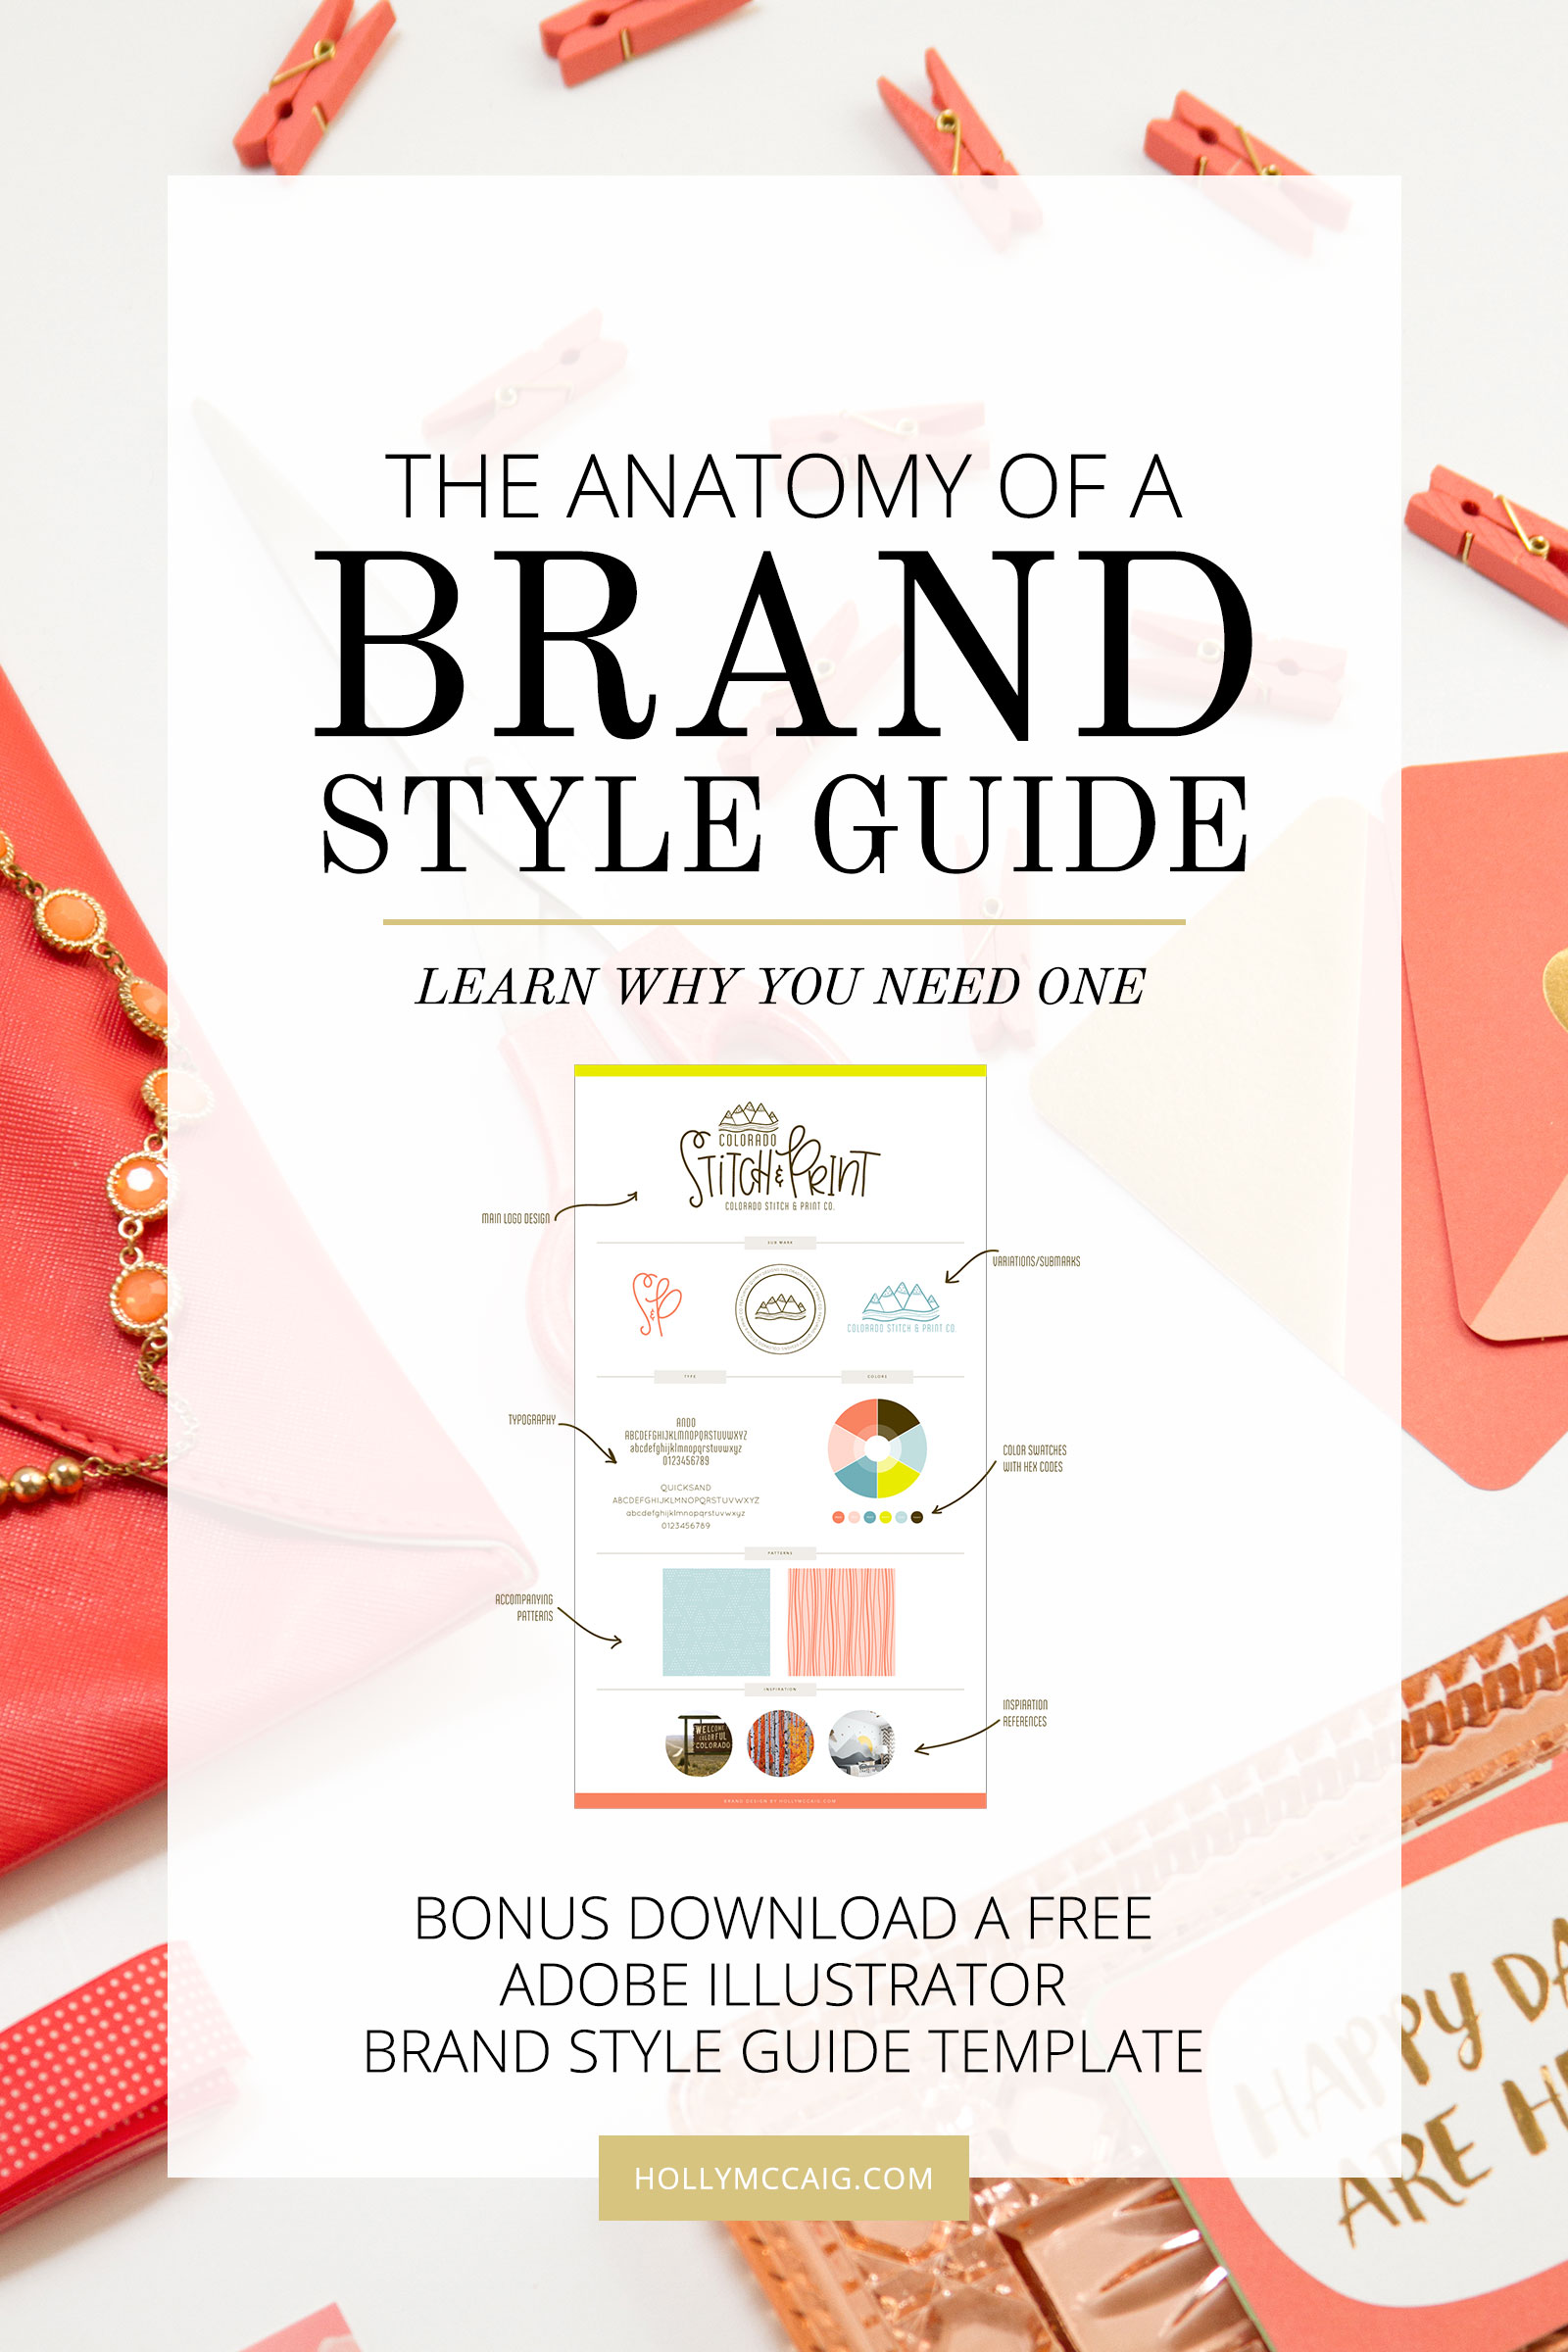 Having a brand style guide is a necessity to ensure that there is consistency when it comes to design as it relates to your blog or brand. I see a lot of brands that have no cohesiveness throughout their business. Having a brand style guide is important so your message is clear to your audience. Watch my tutorial and download my free style guide template at hollymccaig.com